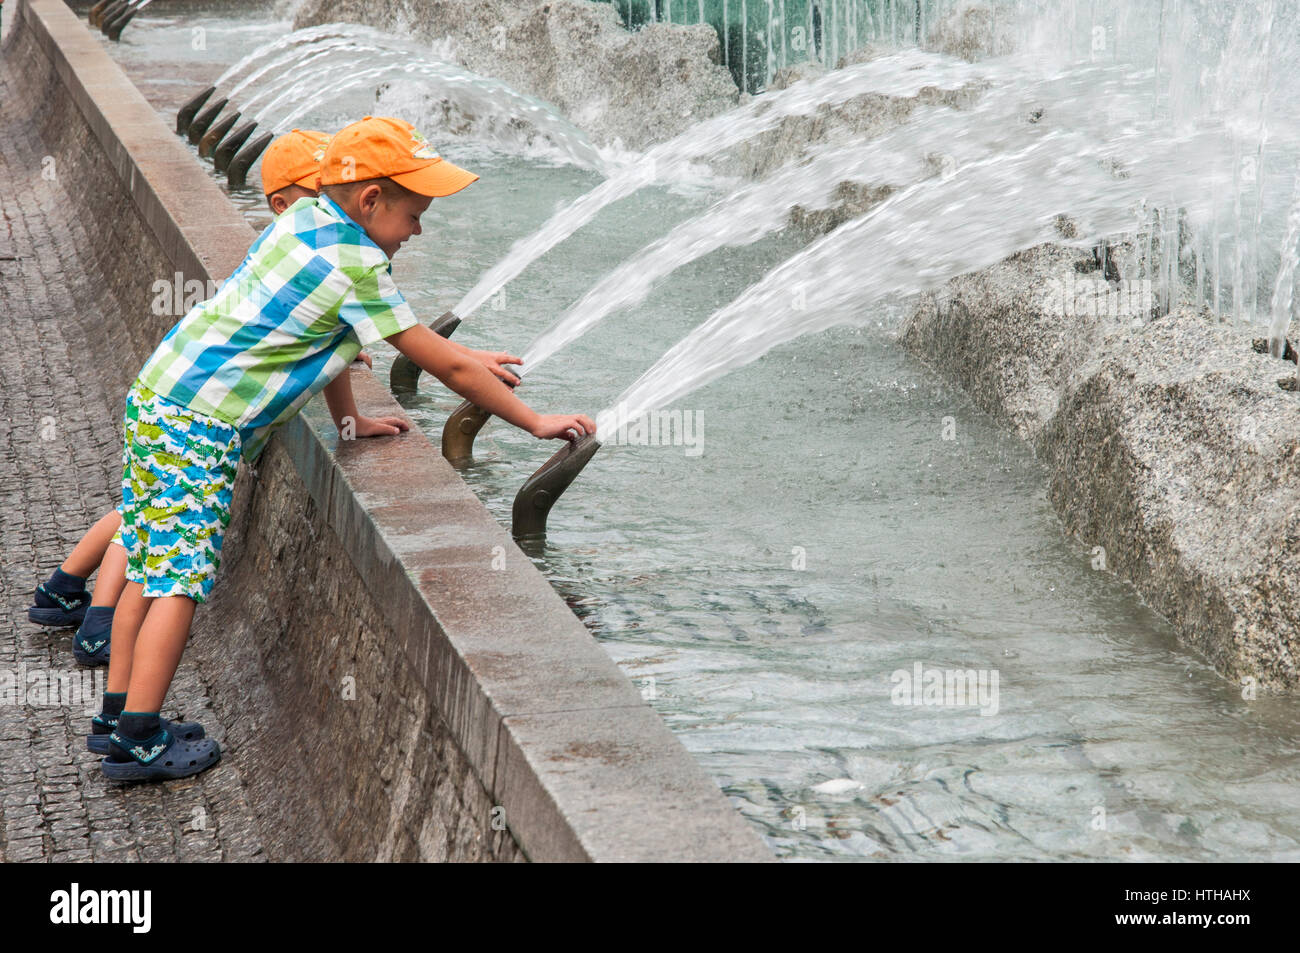 Two boys playing with water jets at Rynek Fountain, 1996, designed by Alojzy Gryt, at Rynek (Market Square) in Wroclaw, - Stock Image